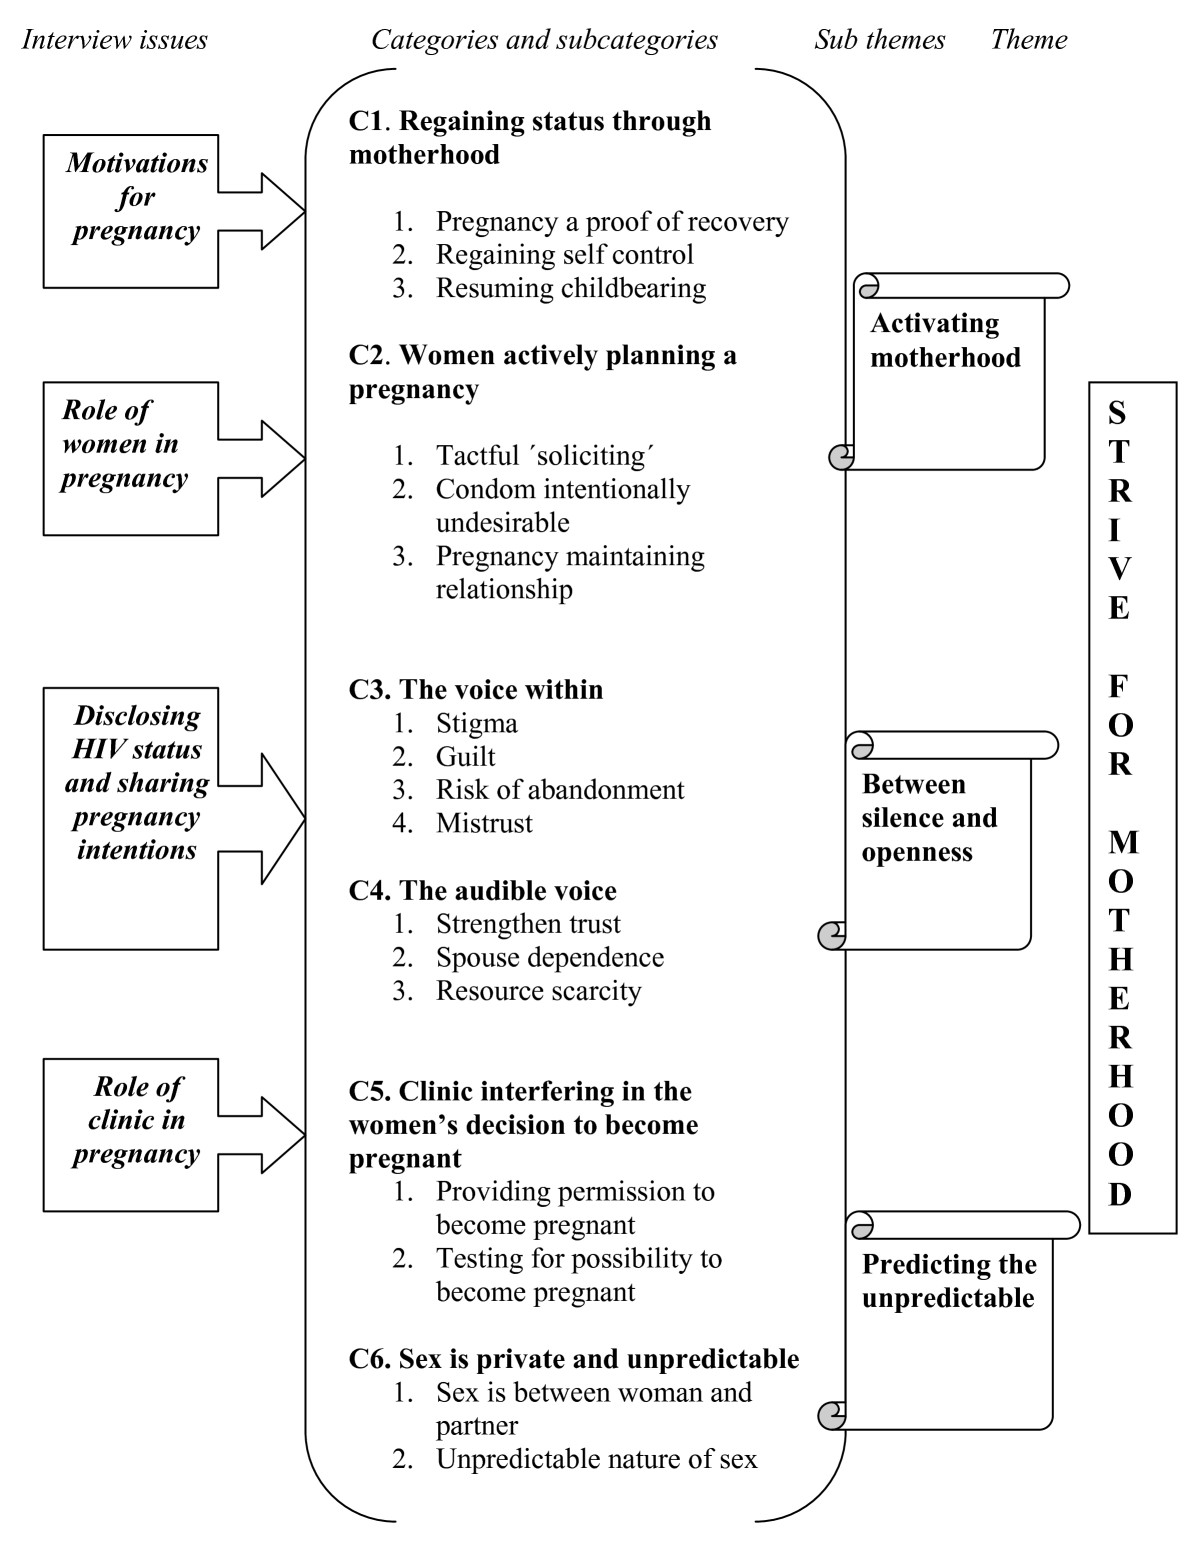 http://static-content.springer.com/image/art%3A10.1186%2F1472-6874-10-13/MediaObjects/12905_2009_Article_191_Fig2_HTML.jpg